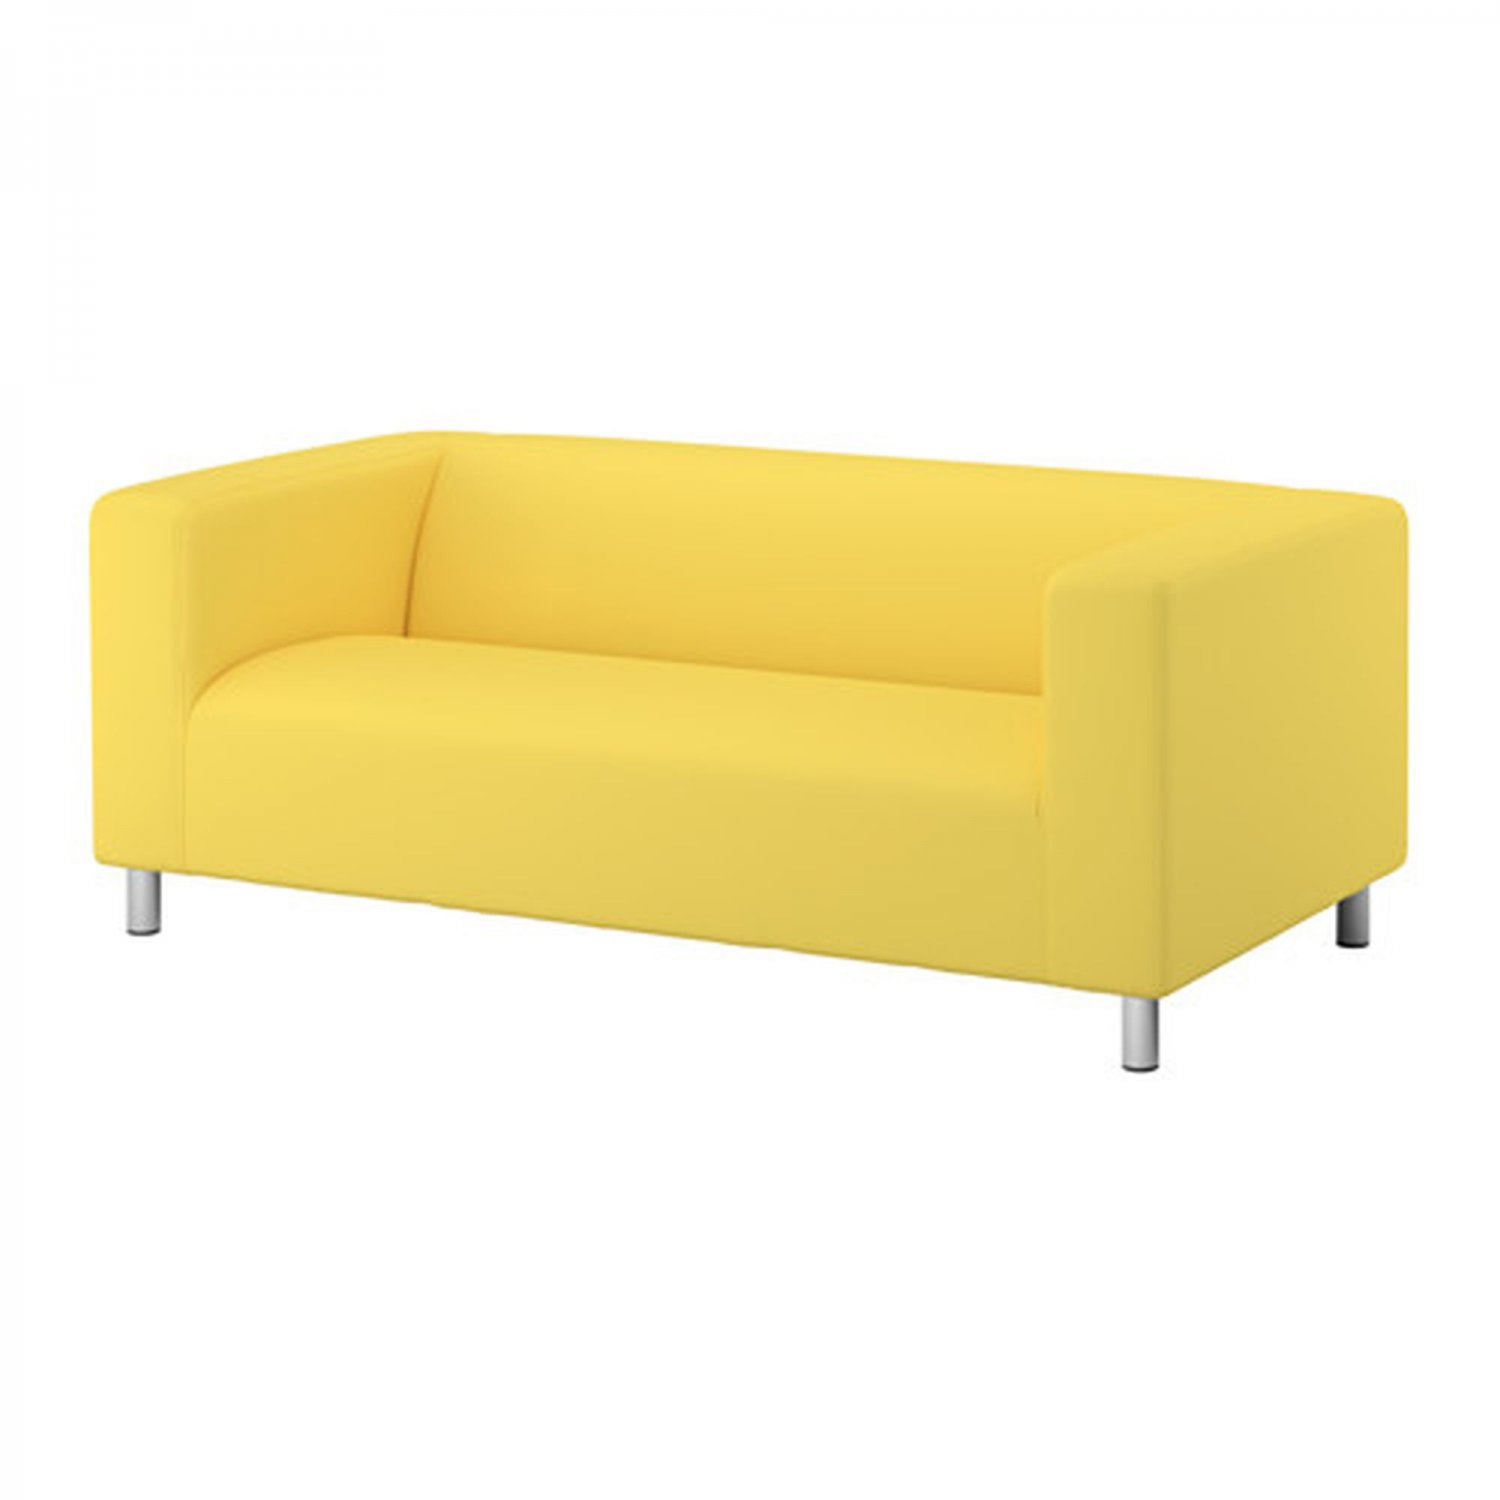 Ikea Sofa Gelb Ikea Klippan Loveseat Sofa Slipcover Cover Vissle Yellow